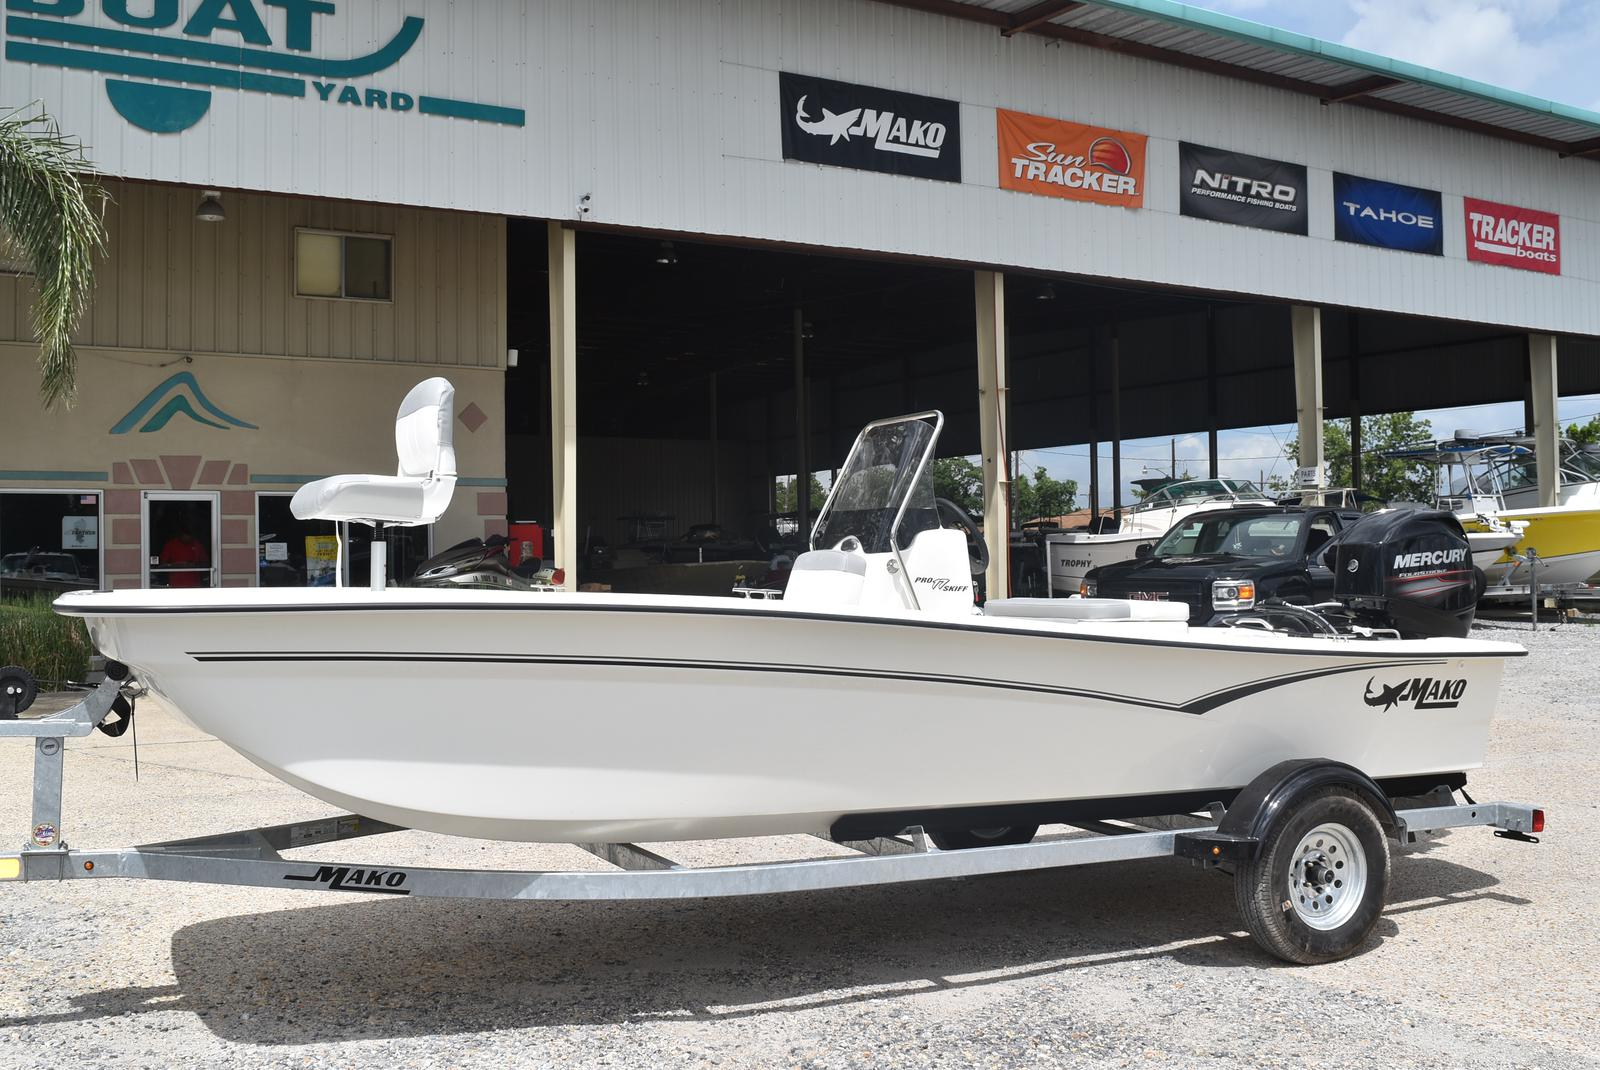 2020 Mako boat for sale, model of the boat is Pro Skiff 17, 75 ELPT & Image # 91 of 702